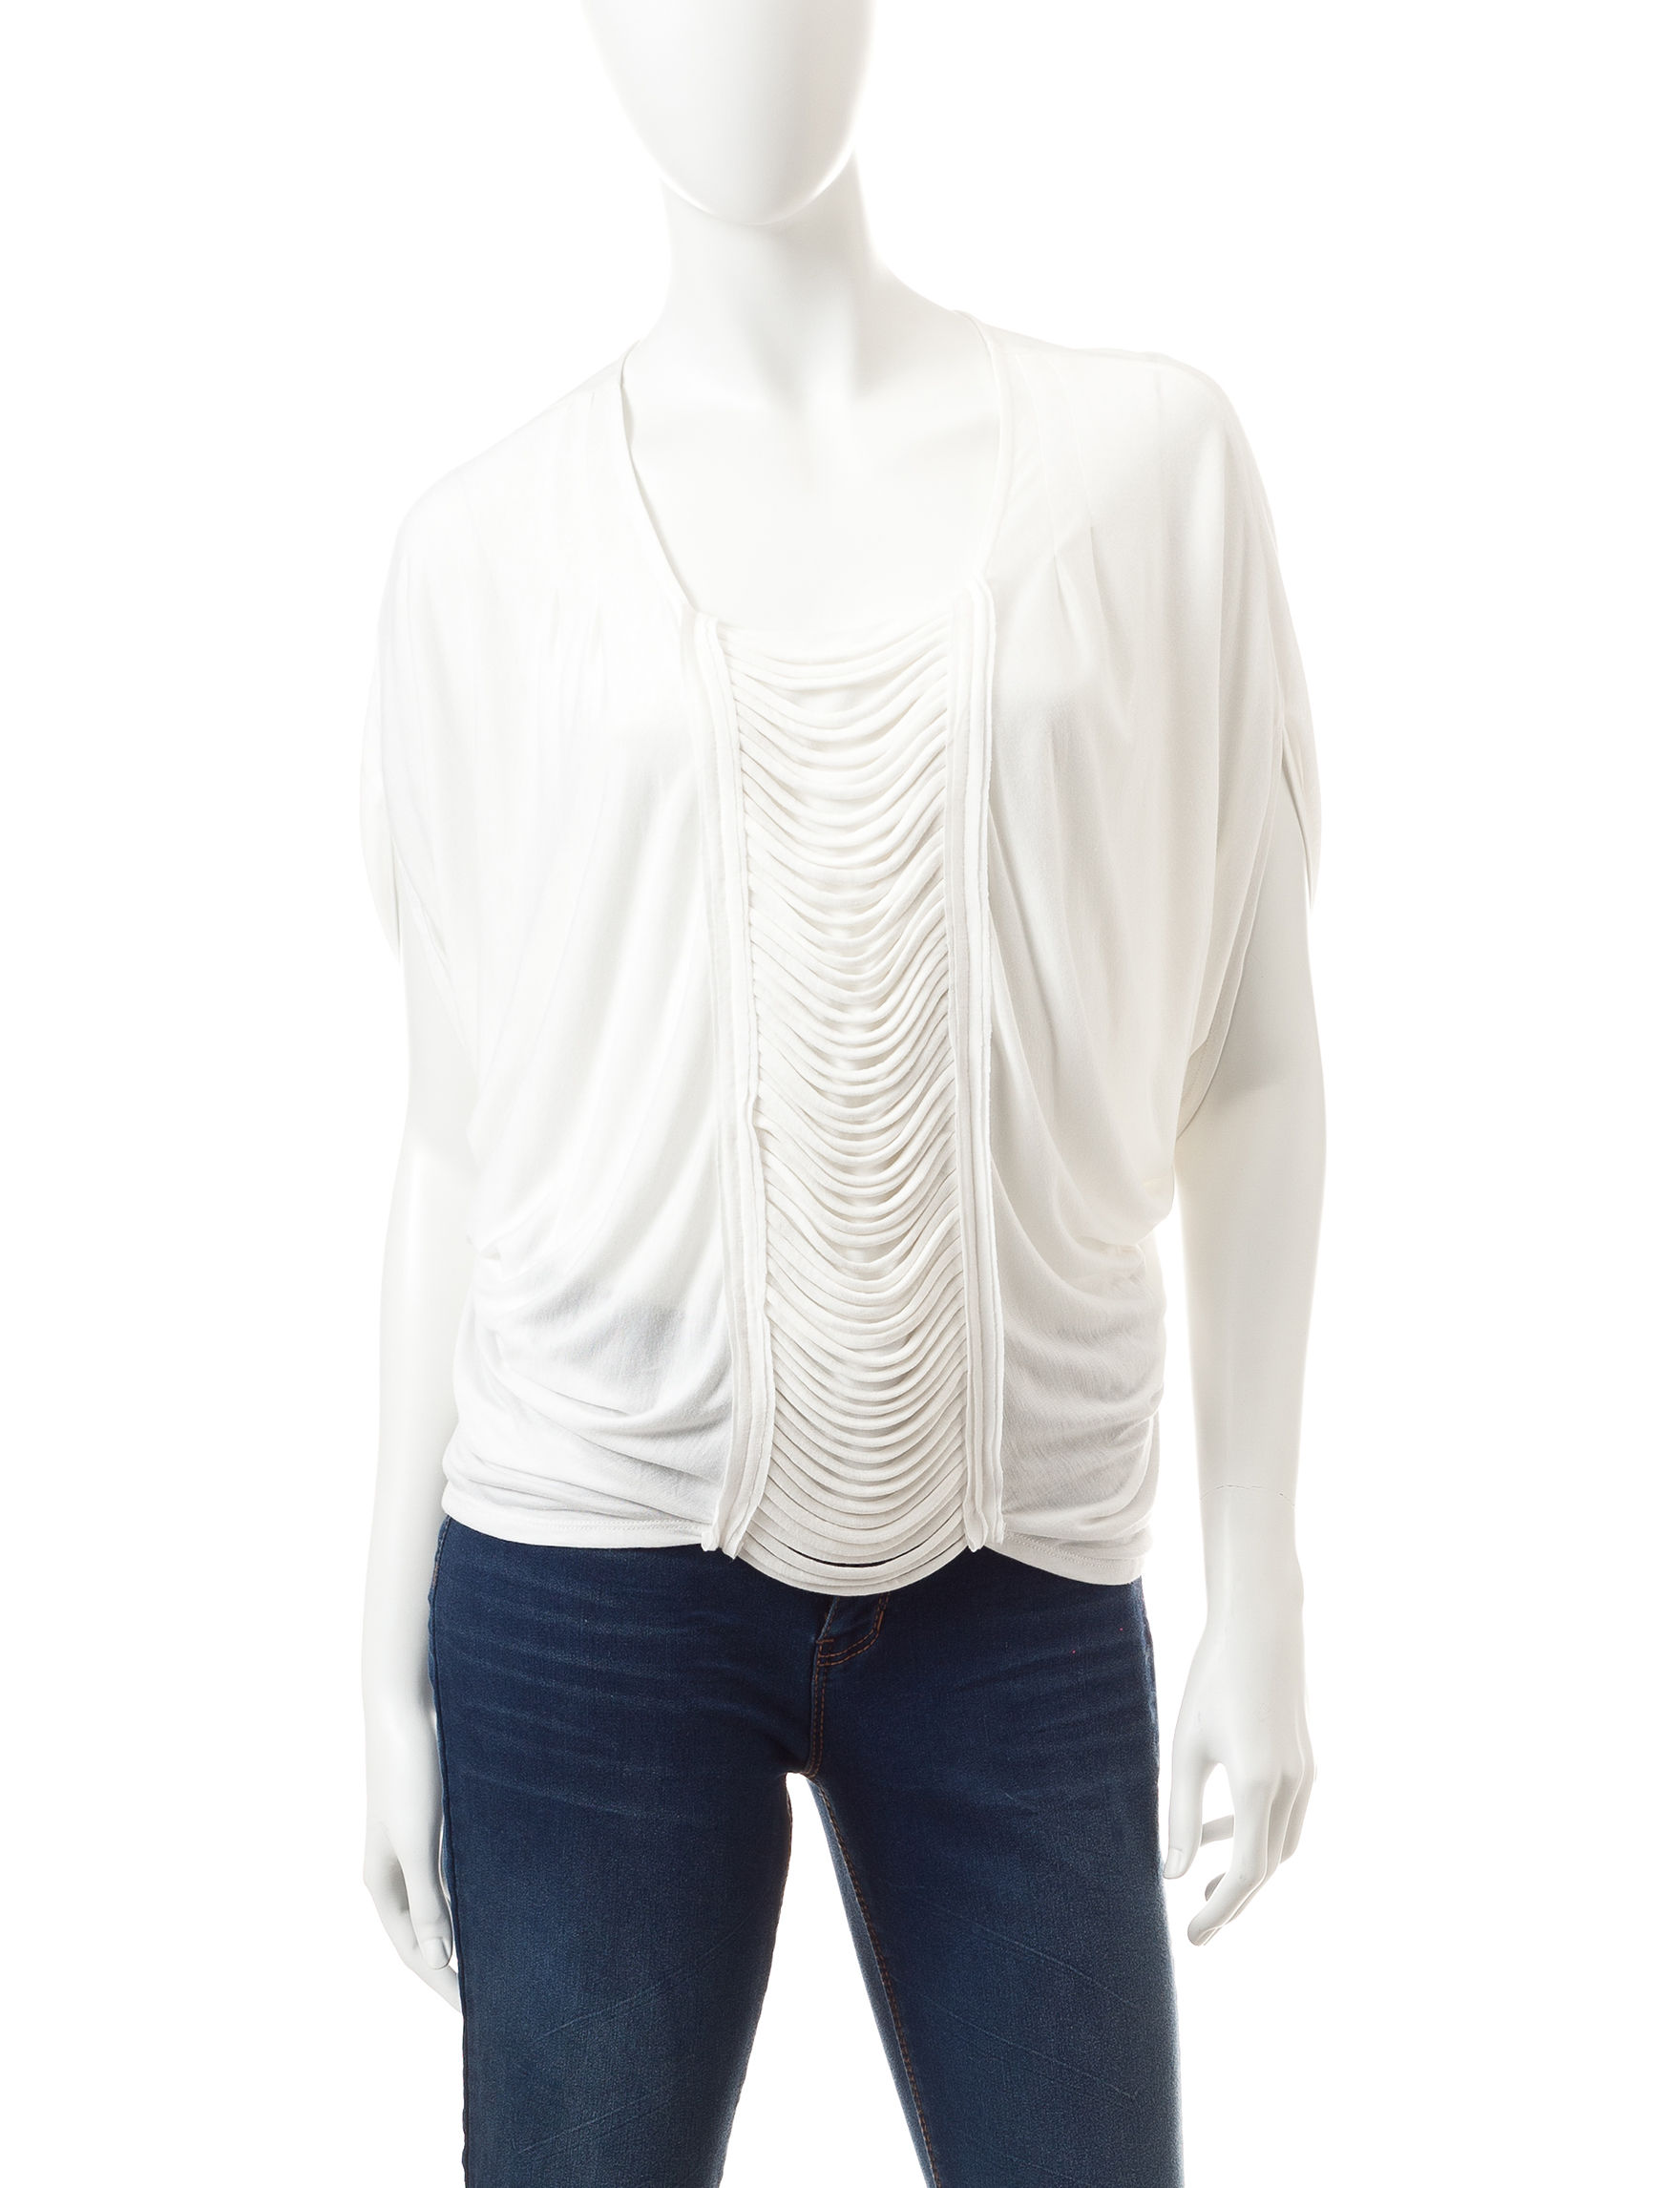 Nine West Jeans White Shirts & Blouses